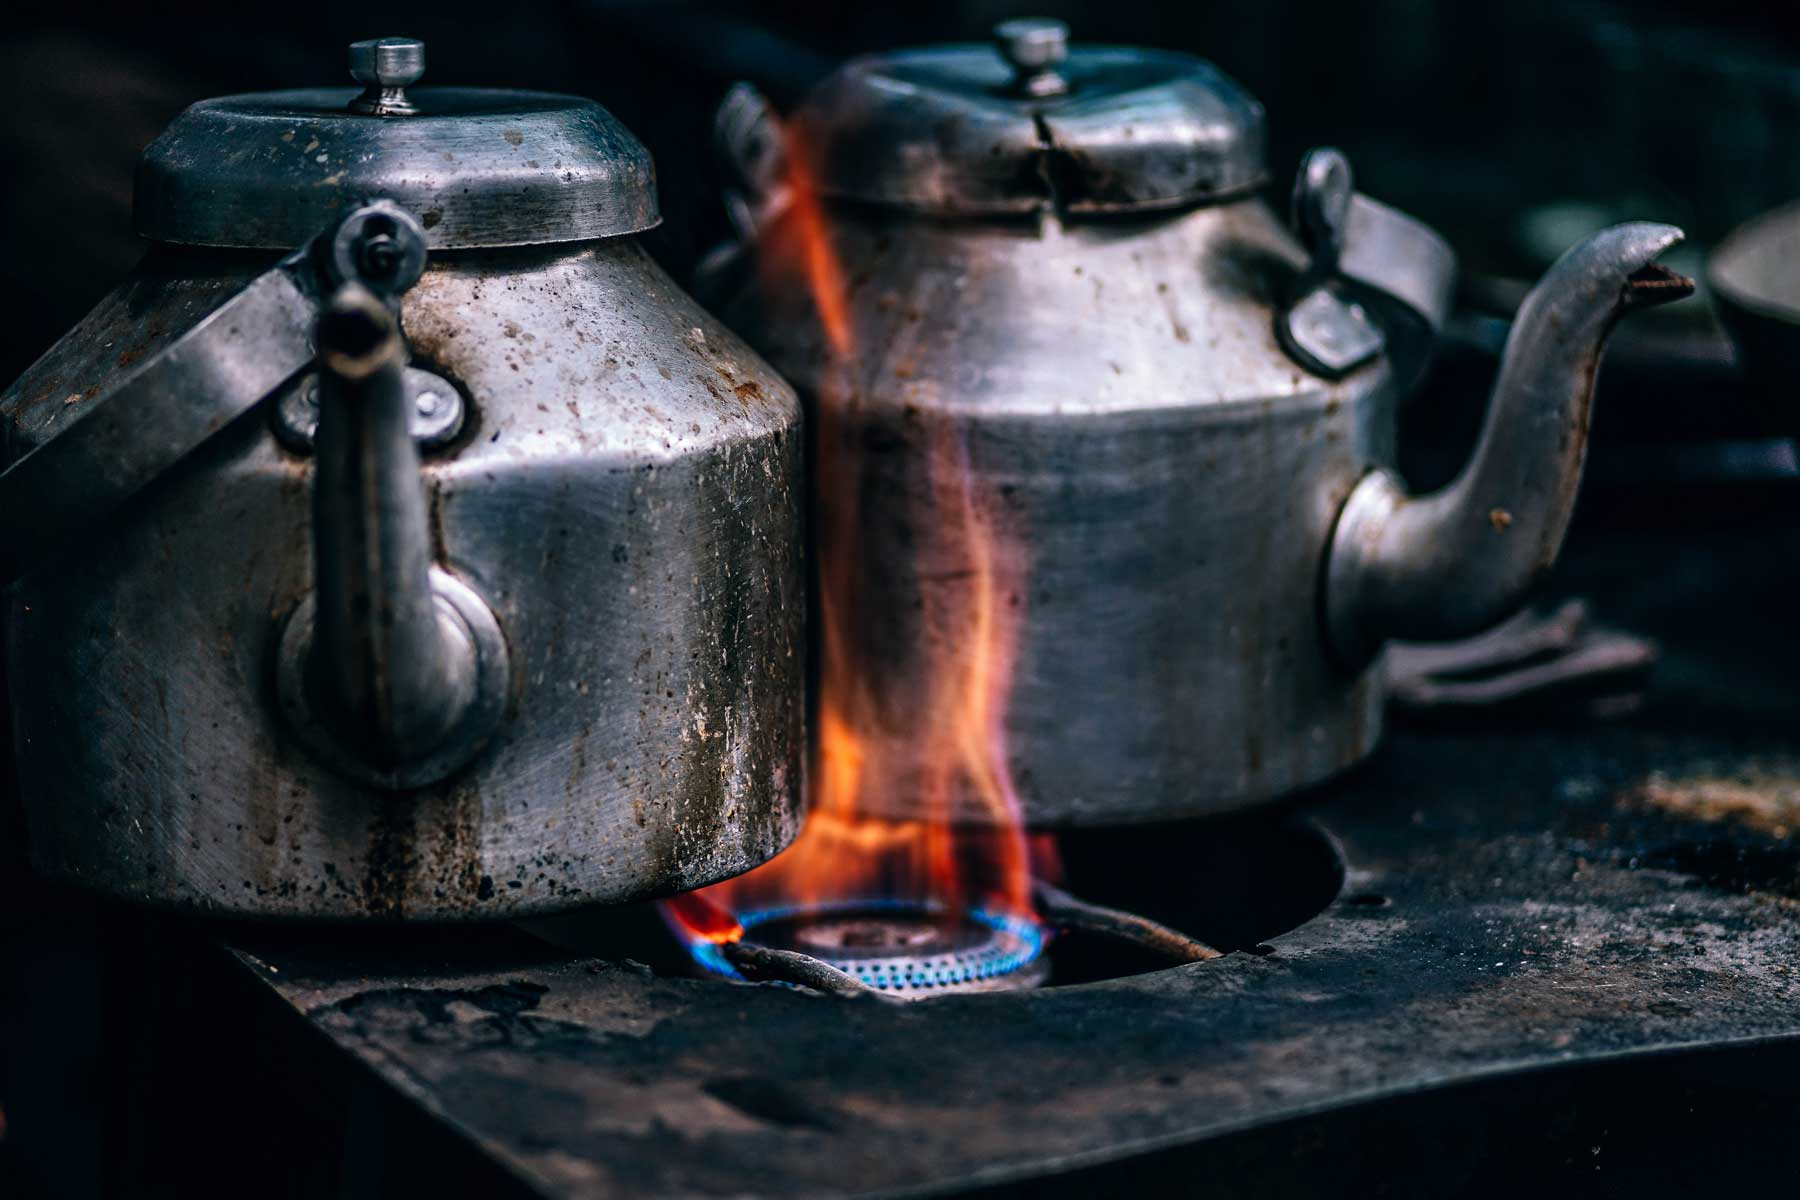 Stove top kettles